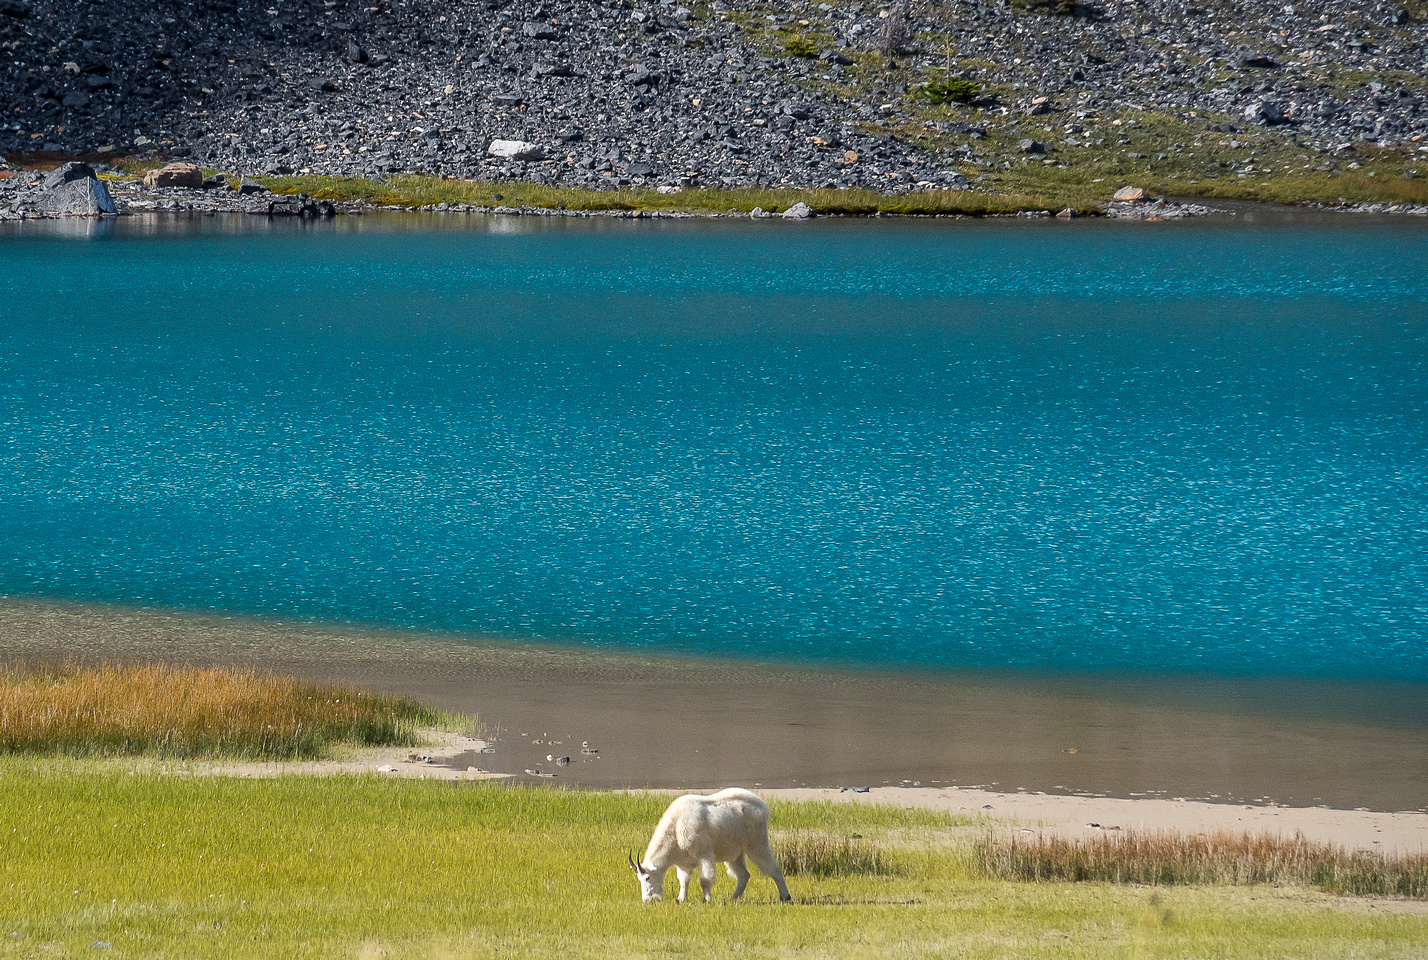 One of my favorite Rockies animals - a gorgeous mountain billy goat grazes near Capricorn Lake.